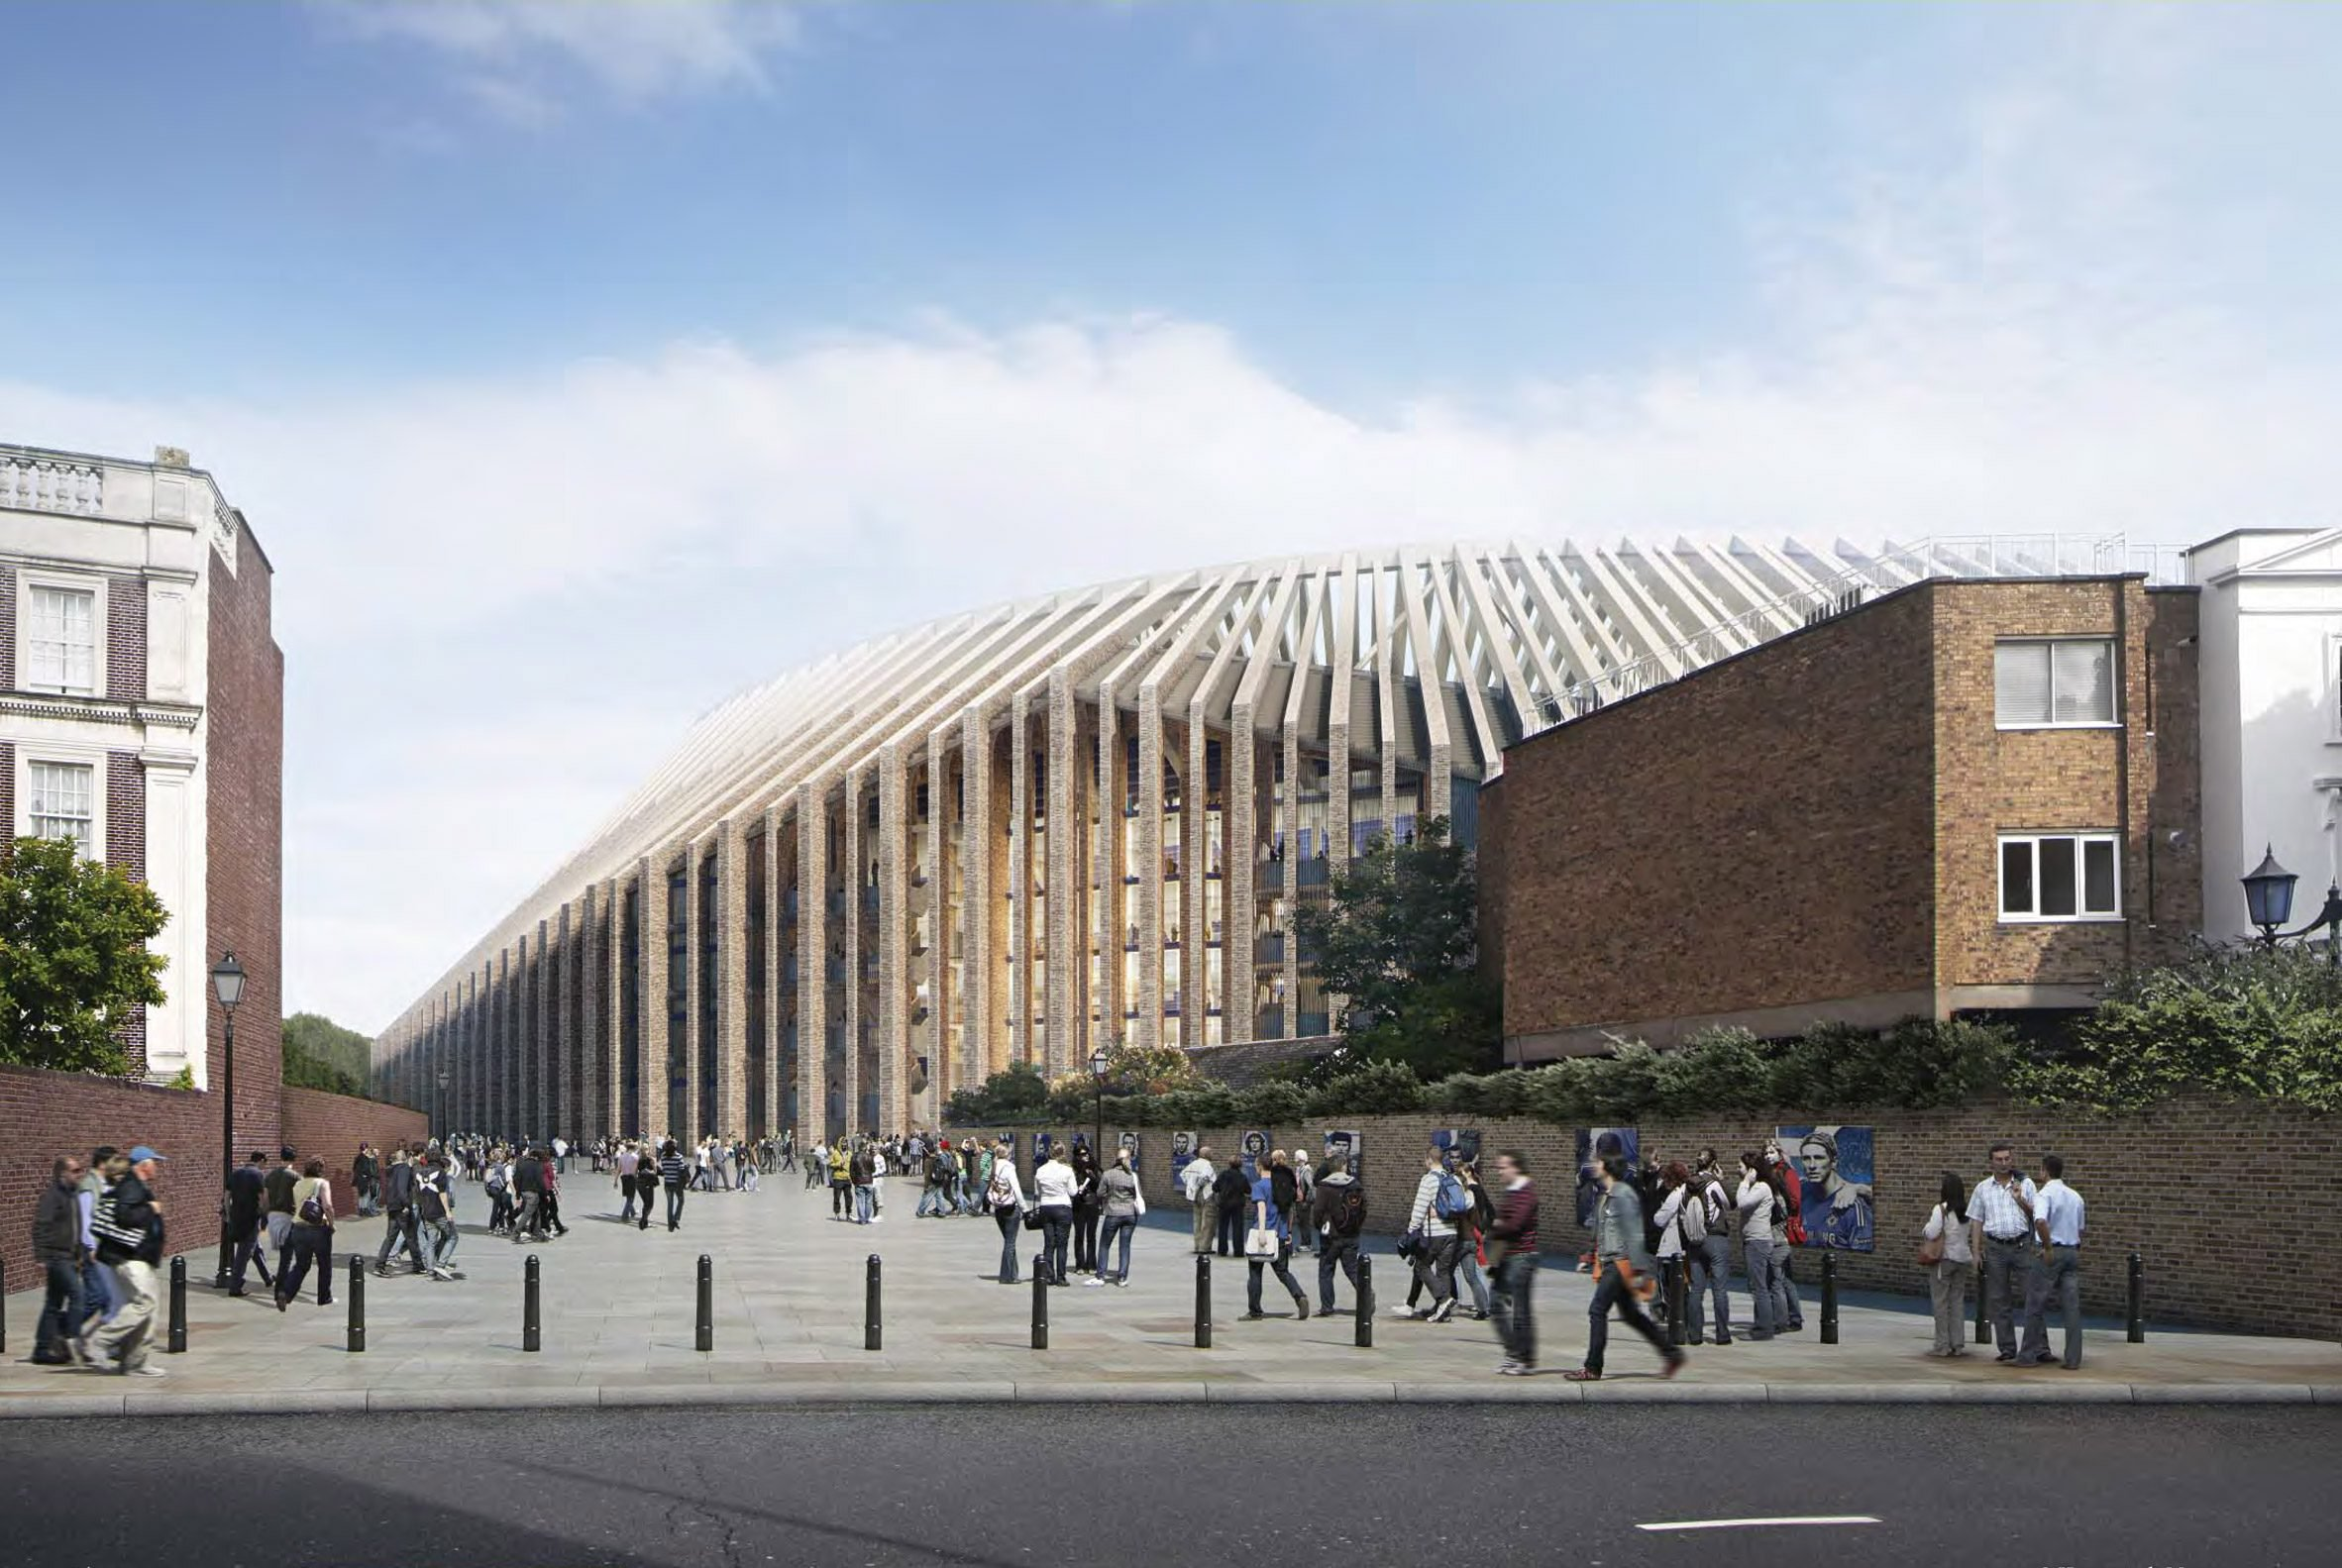 Chelsea seek council help with stadium dispute